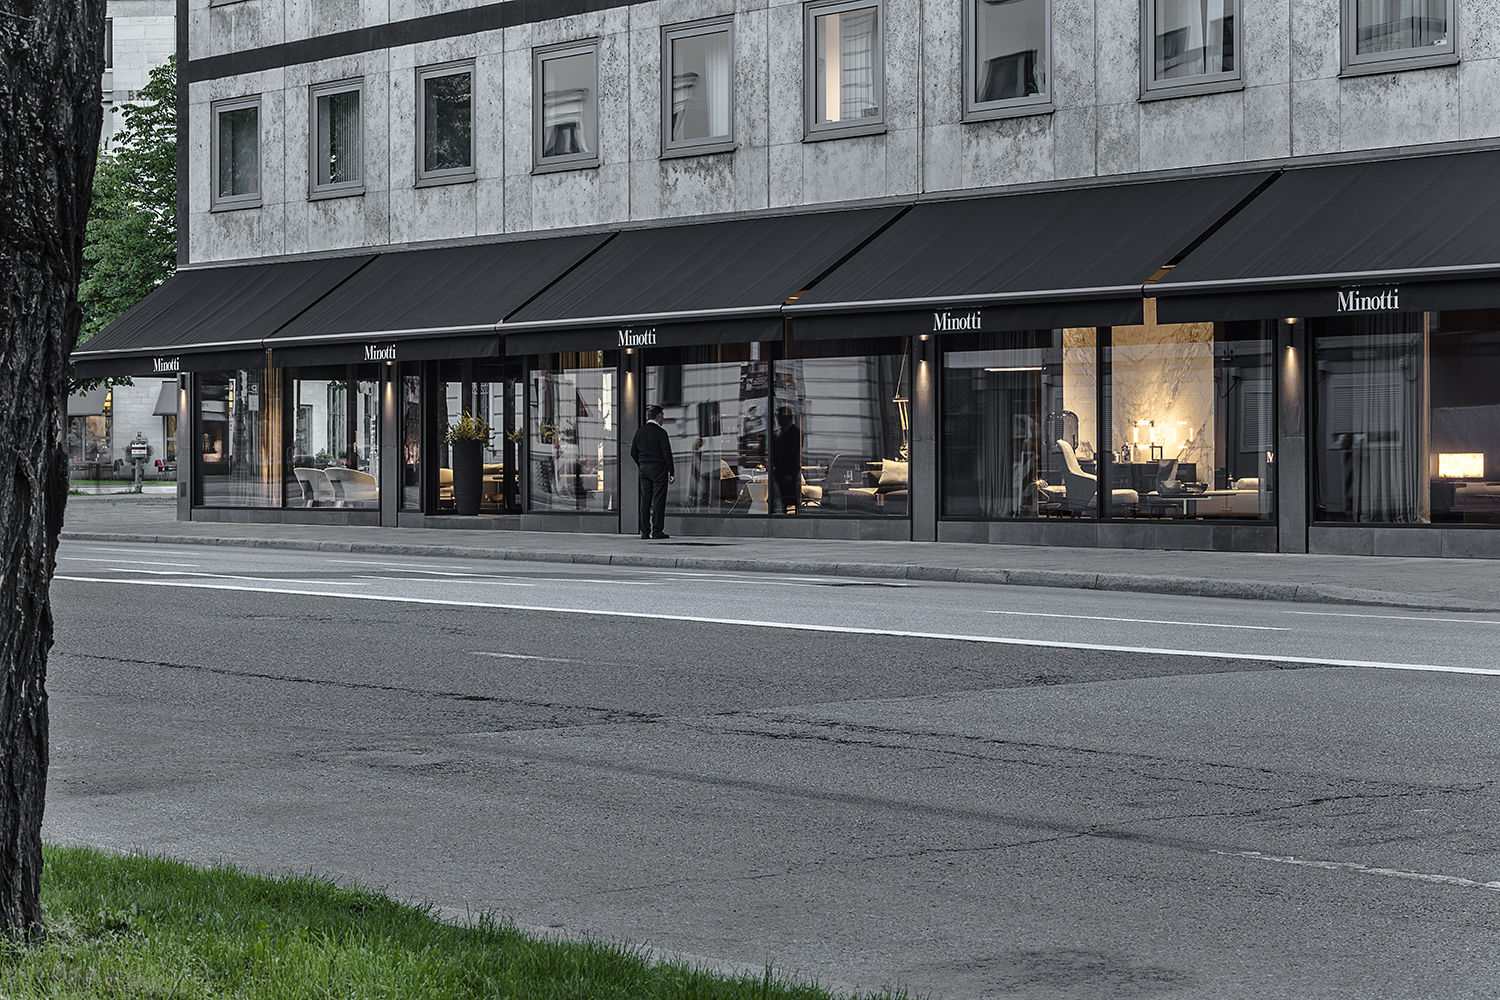 minotti showroom berlin euromobil in vienna lookbox living living innovations opens first. Black Bedroom Furniture Sets. Home Design Ideas